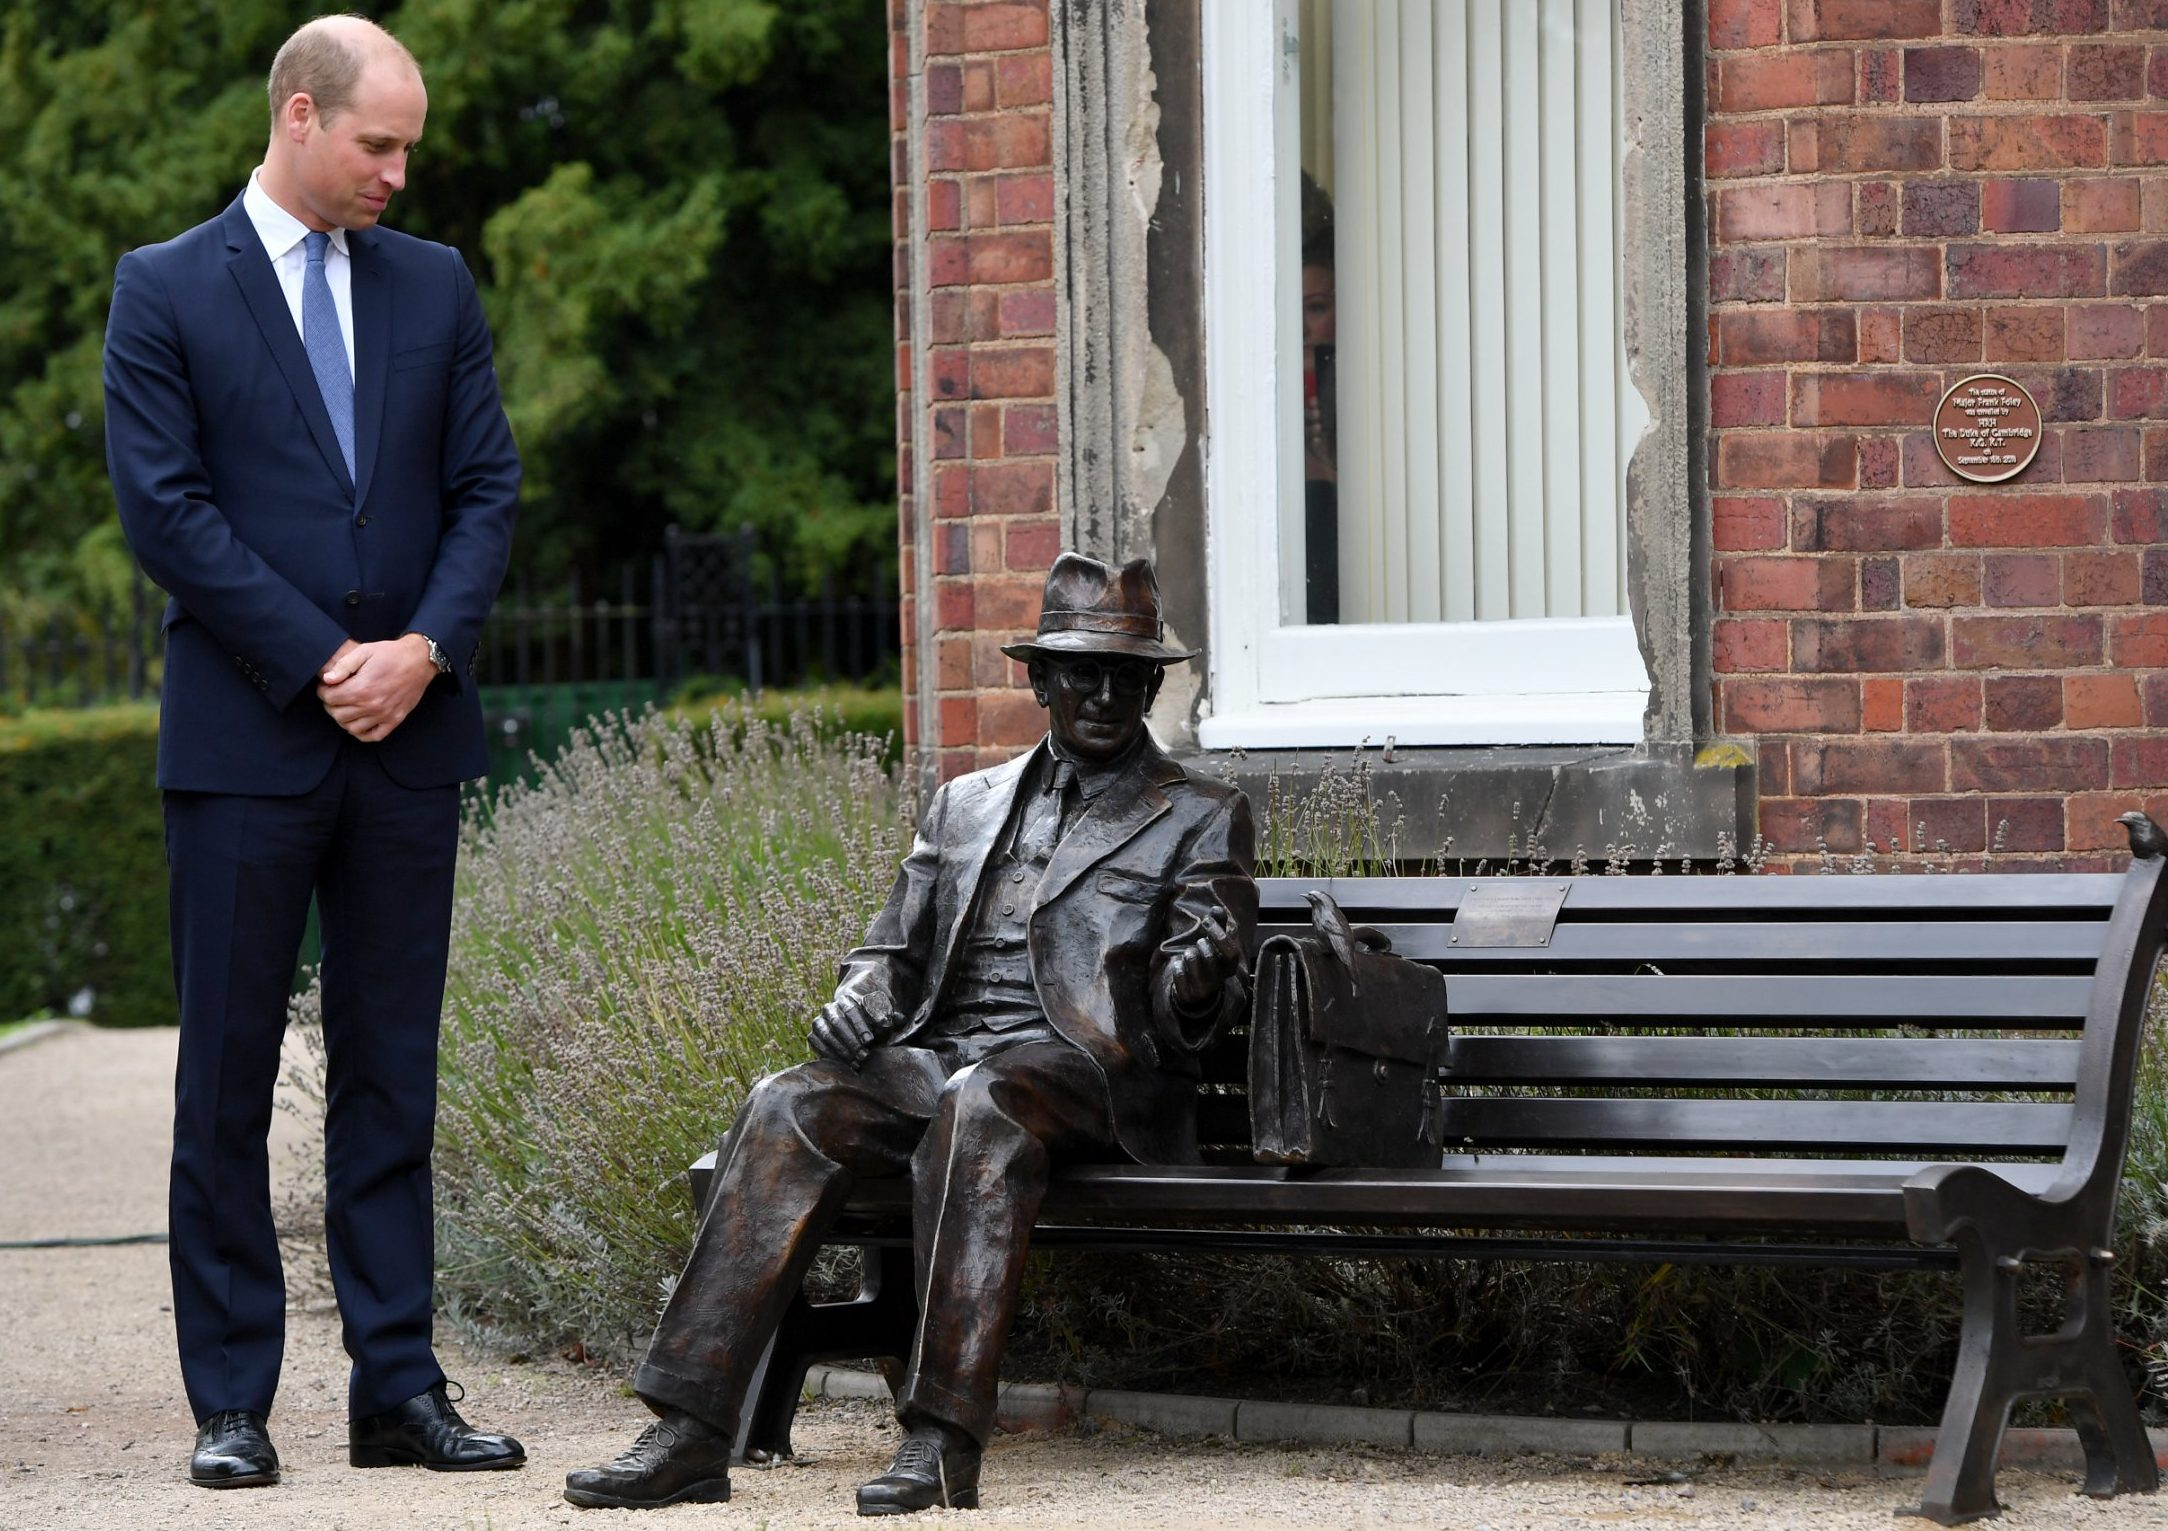 STOURBRIDGE, ENGLAND - SEPTEMBER 18: Prince William, Duke of Cambridge unveils a new sculpture of Major Frank Foley by artist Andy de Comyn on September 18, 2018 in Stourbridge, United Kingdom. Major Foley was a British Intelligence Officer for the Embassy in Berlin where he bent the rules to allow thousands of Jewish families escape Nazi Germany. (Photo by Anthony Devlin/Getty Images)